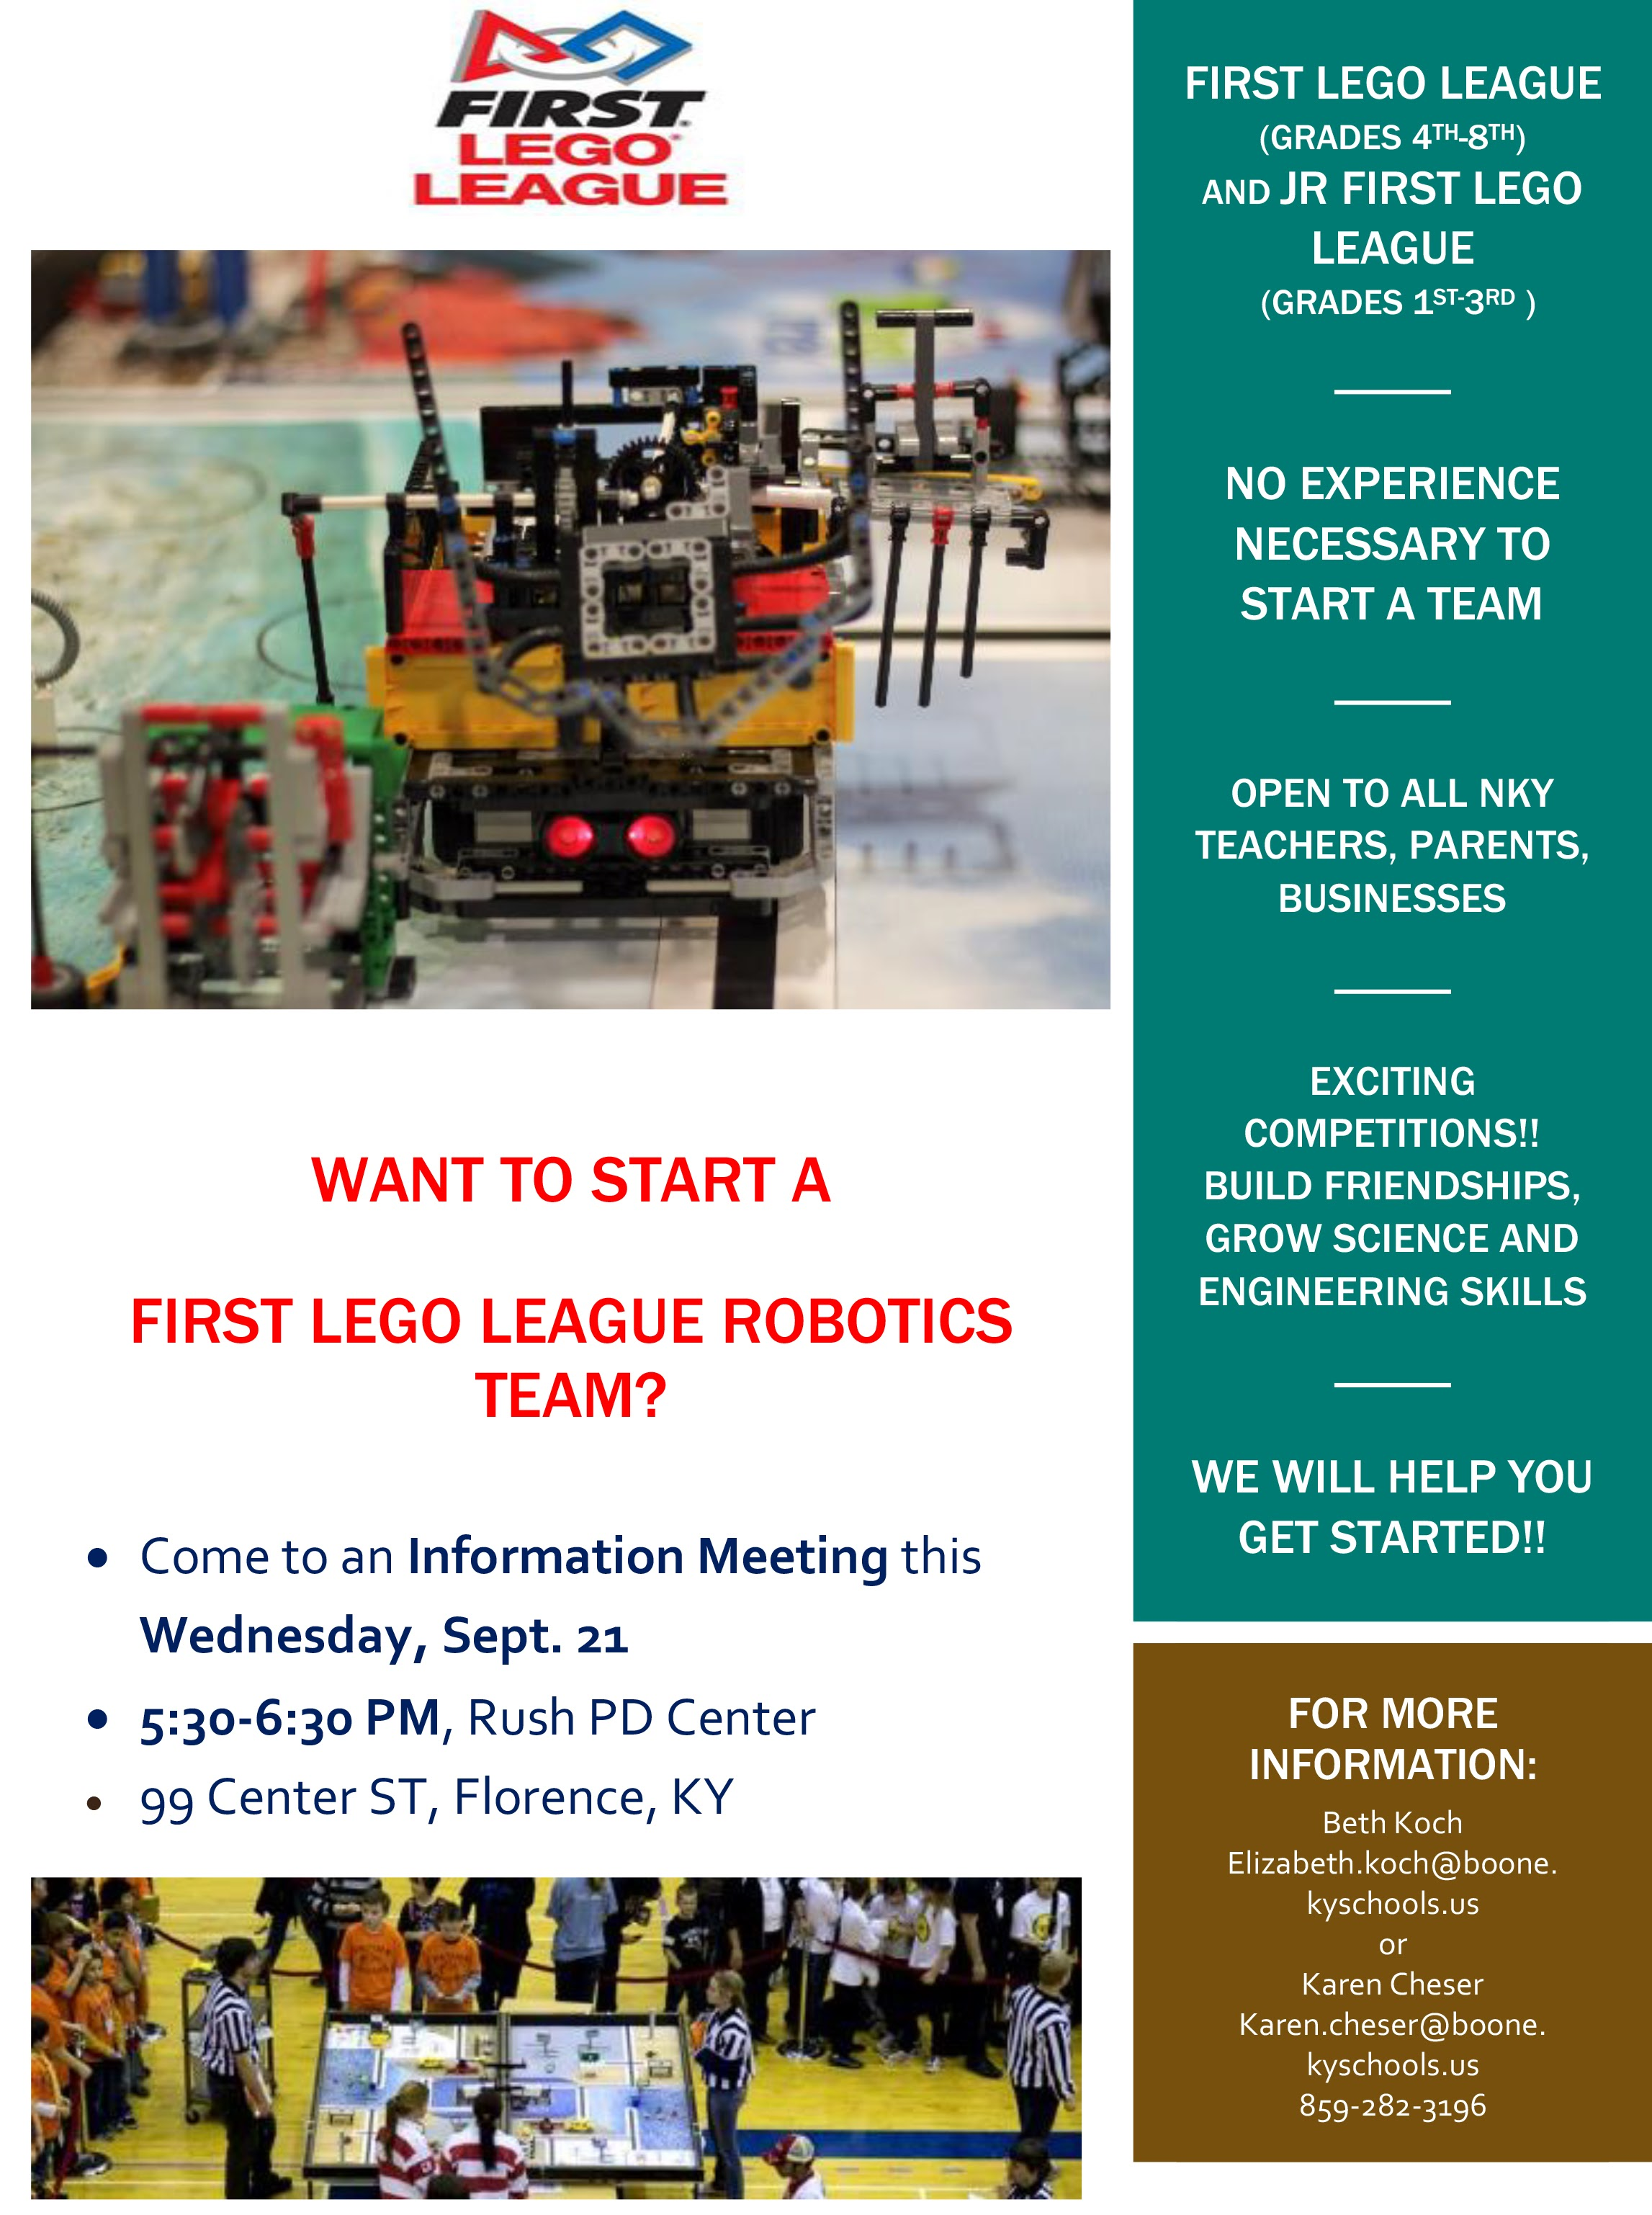 First Lego League flyer